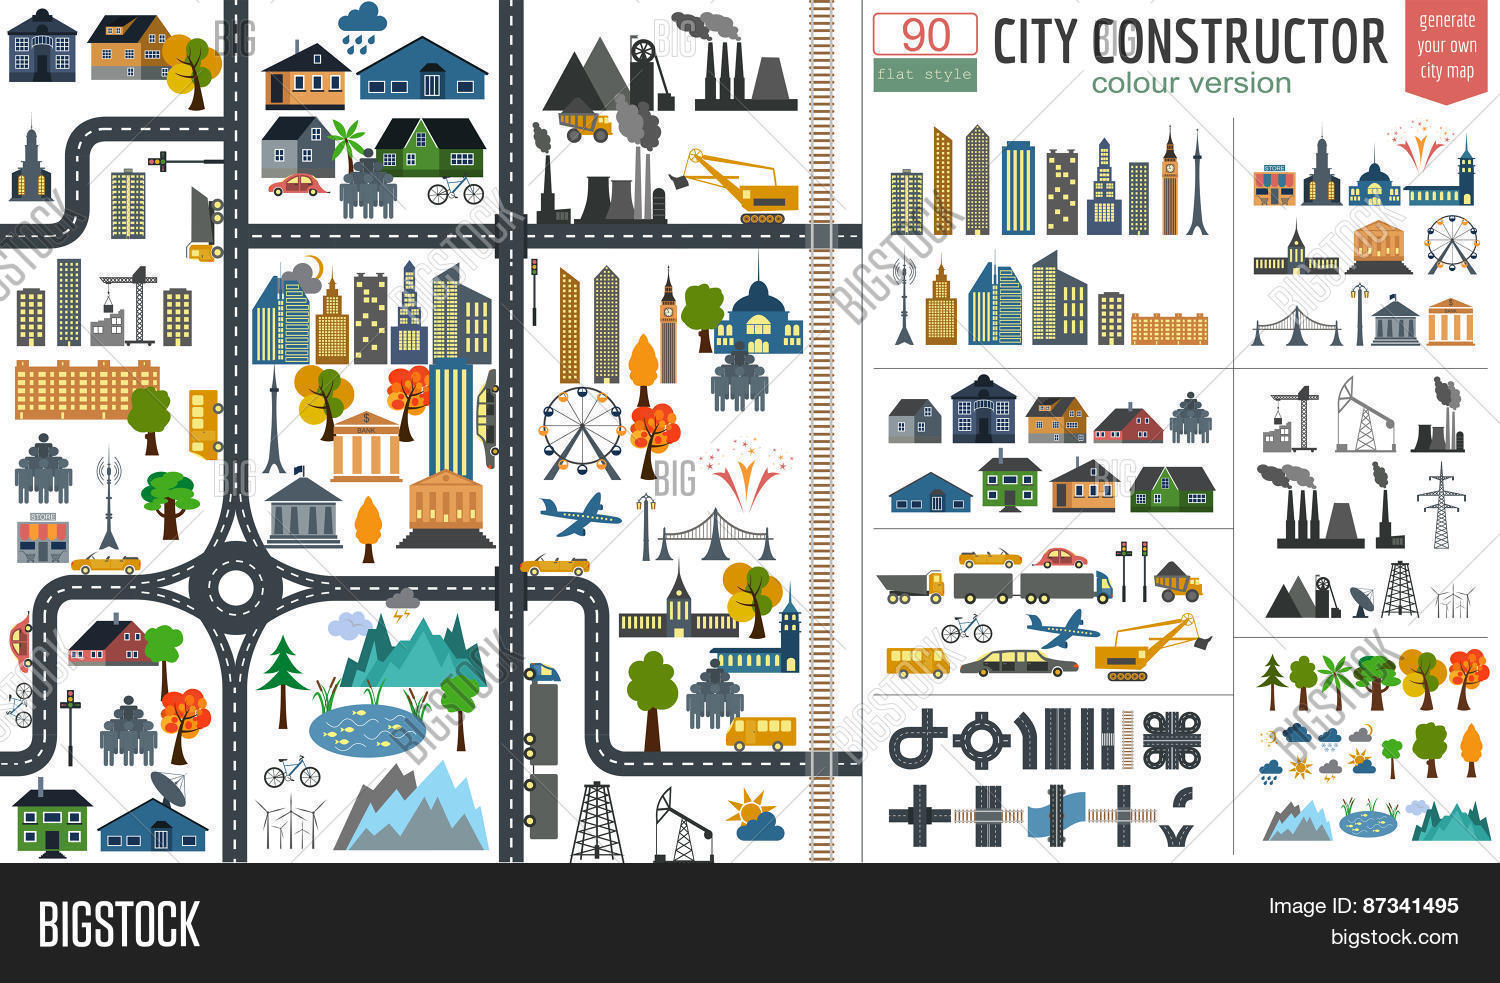 City Map Generator City Map Example Elements For